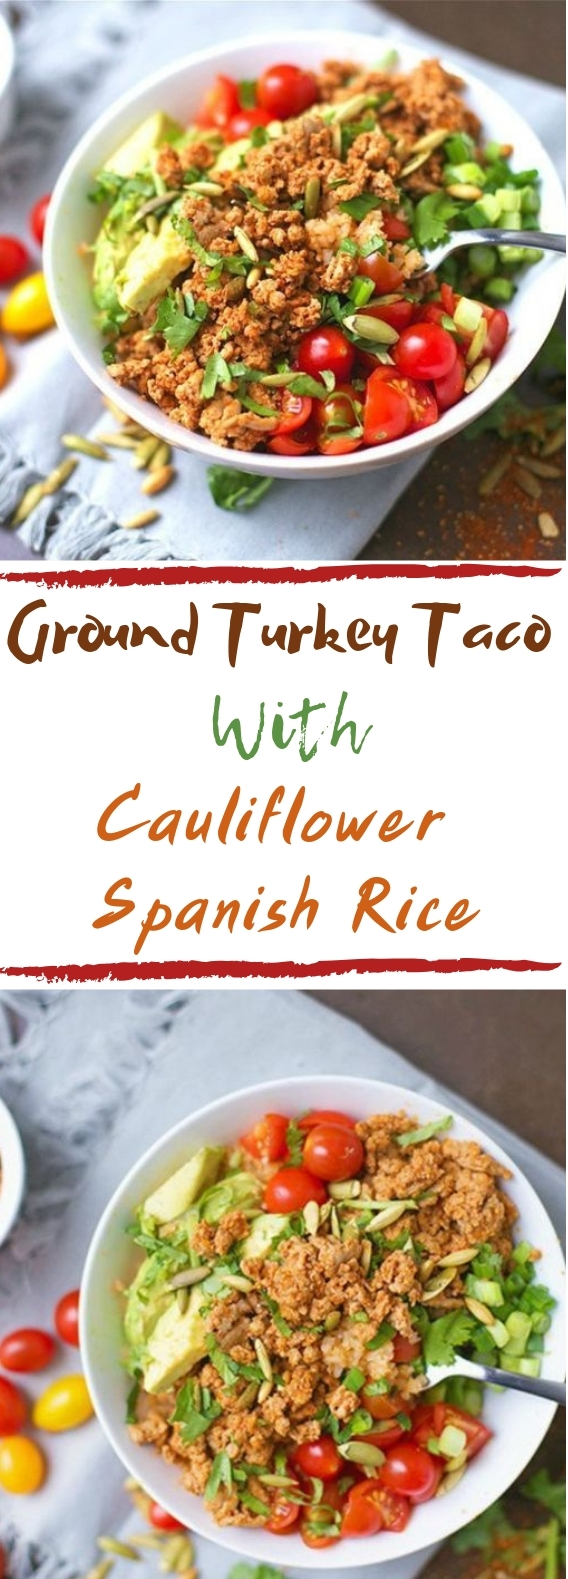 Ground Turkey Taco Bowls With Cauliflower Spanish Rice #healthymeal #lowcarb